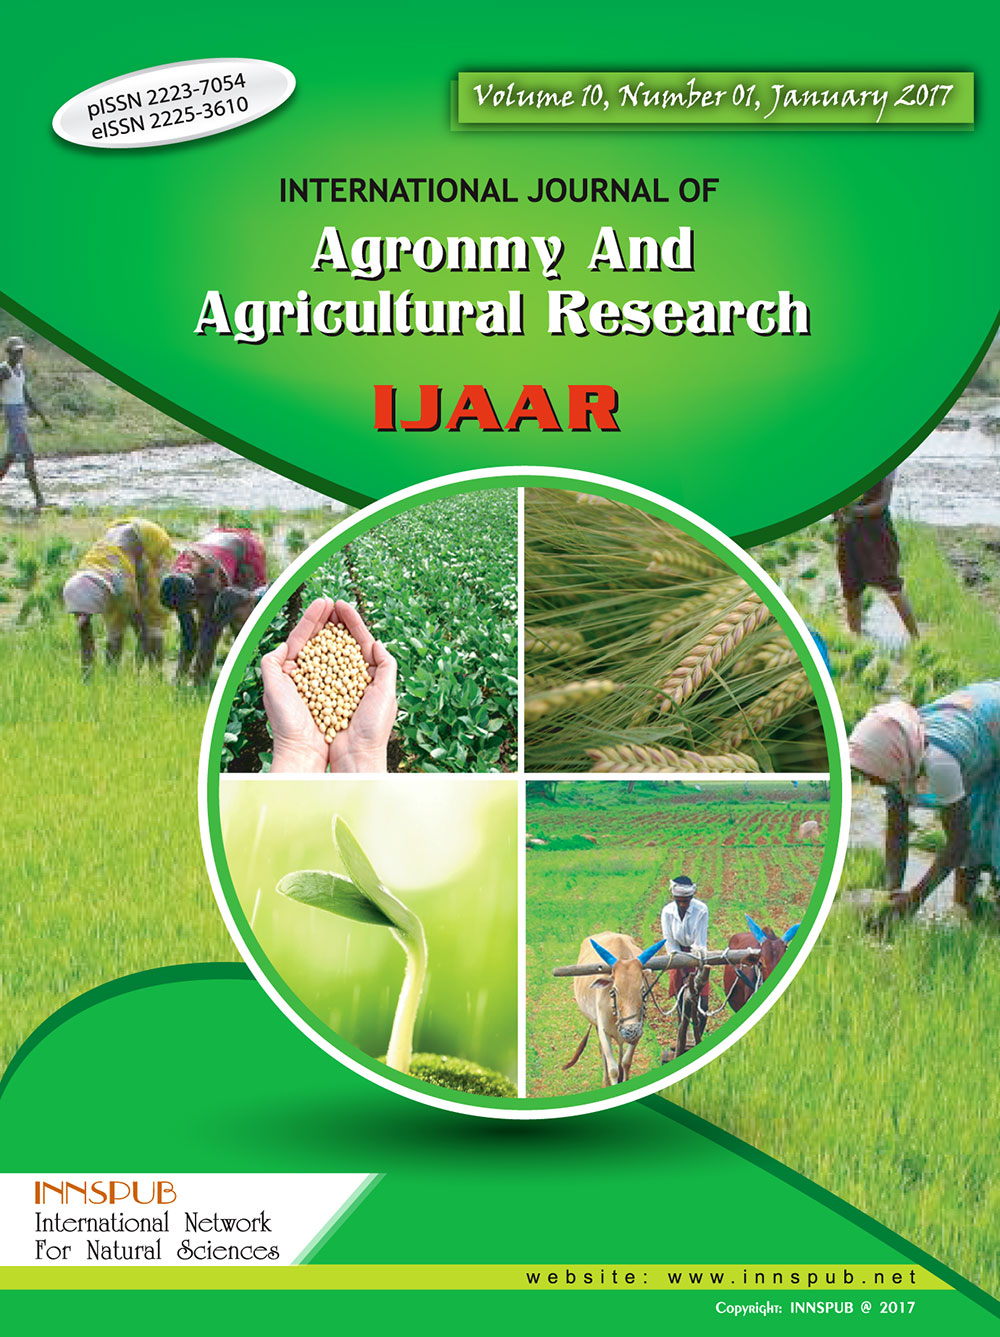 International Journal of Agronomy and Agricultural Research